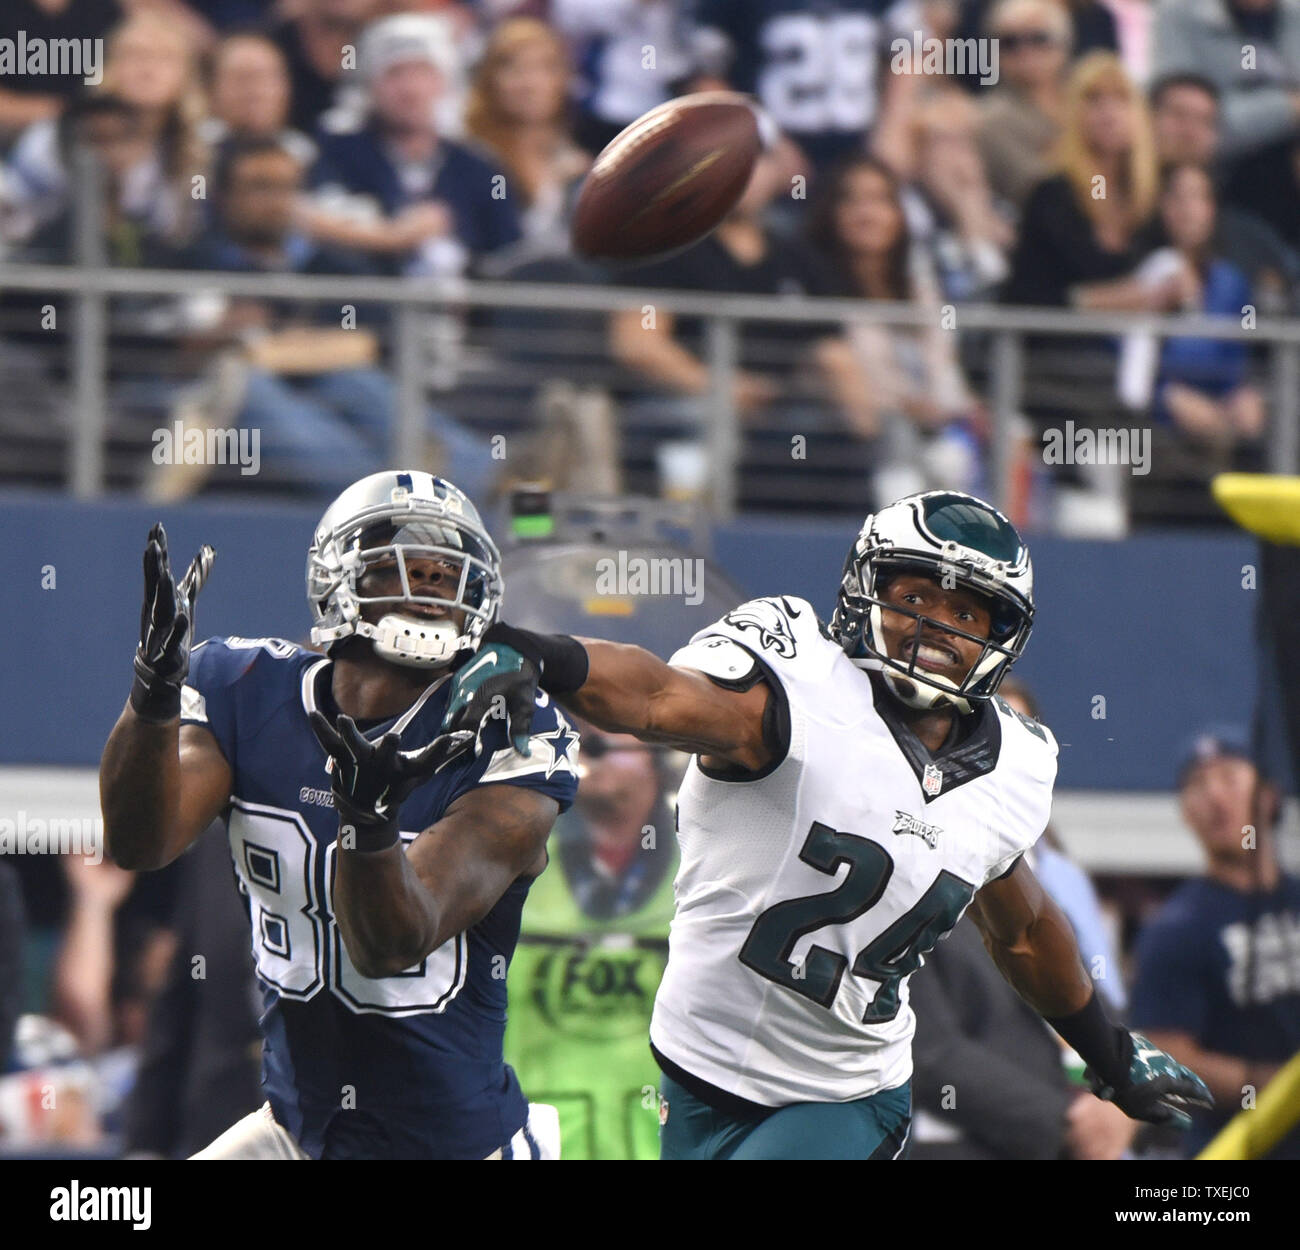 Dallas Cowboys Dez Bryant Makes A Catch In Front Of The